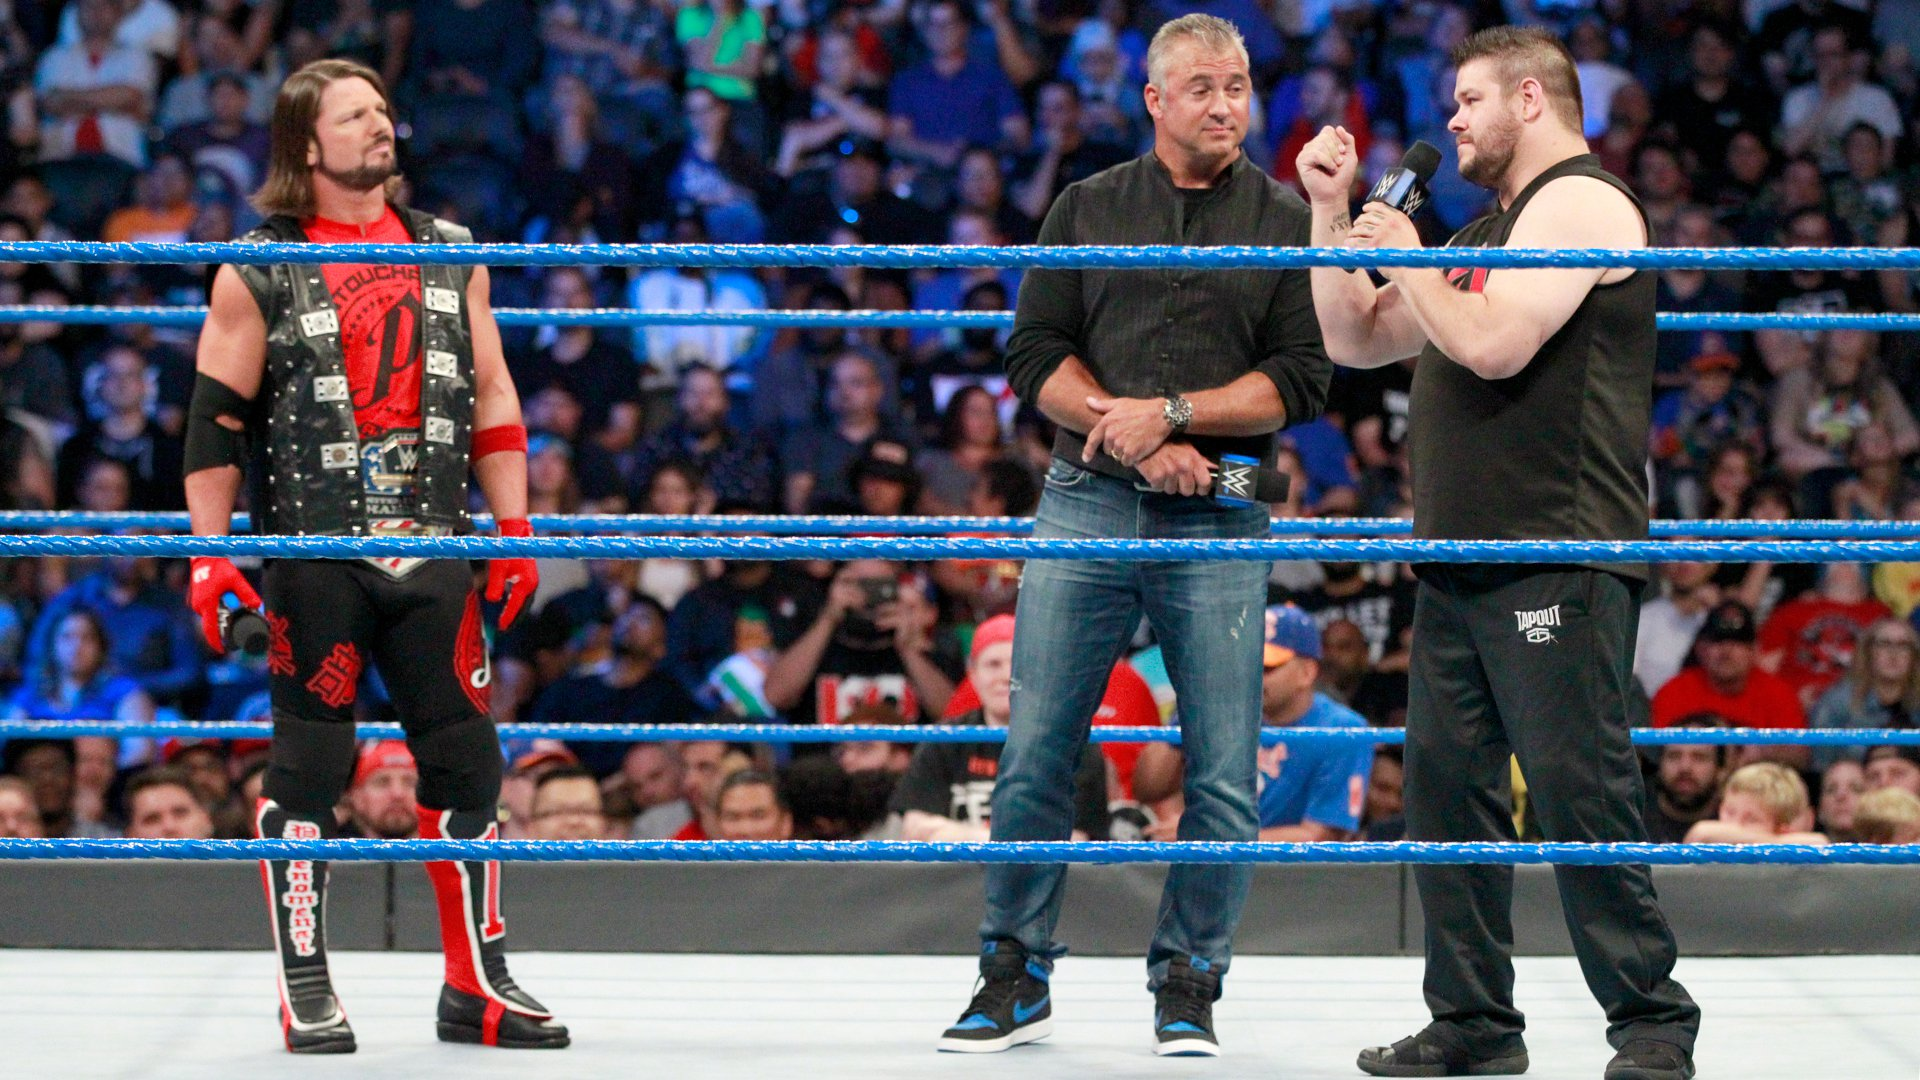 ... and tells AJ that there could be an entire collection of clips that show Shane-O-Mac's shady officiating.